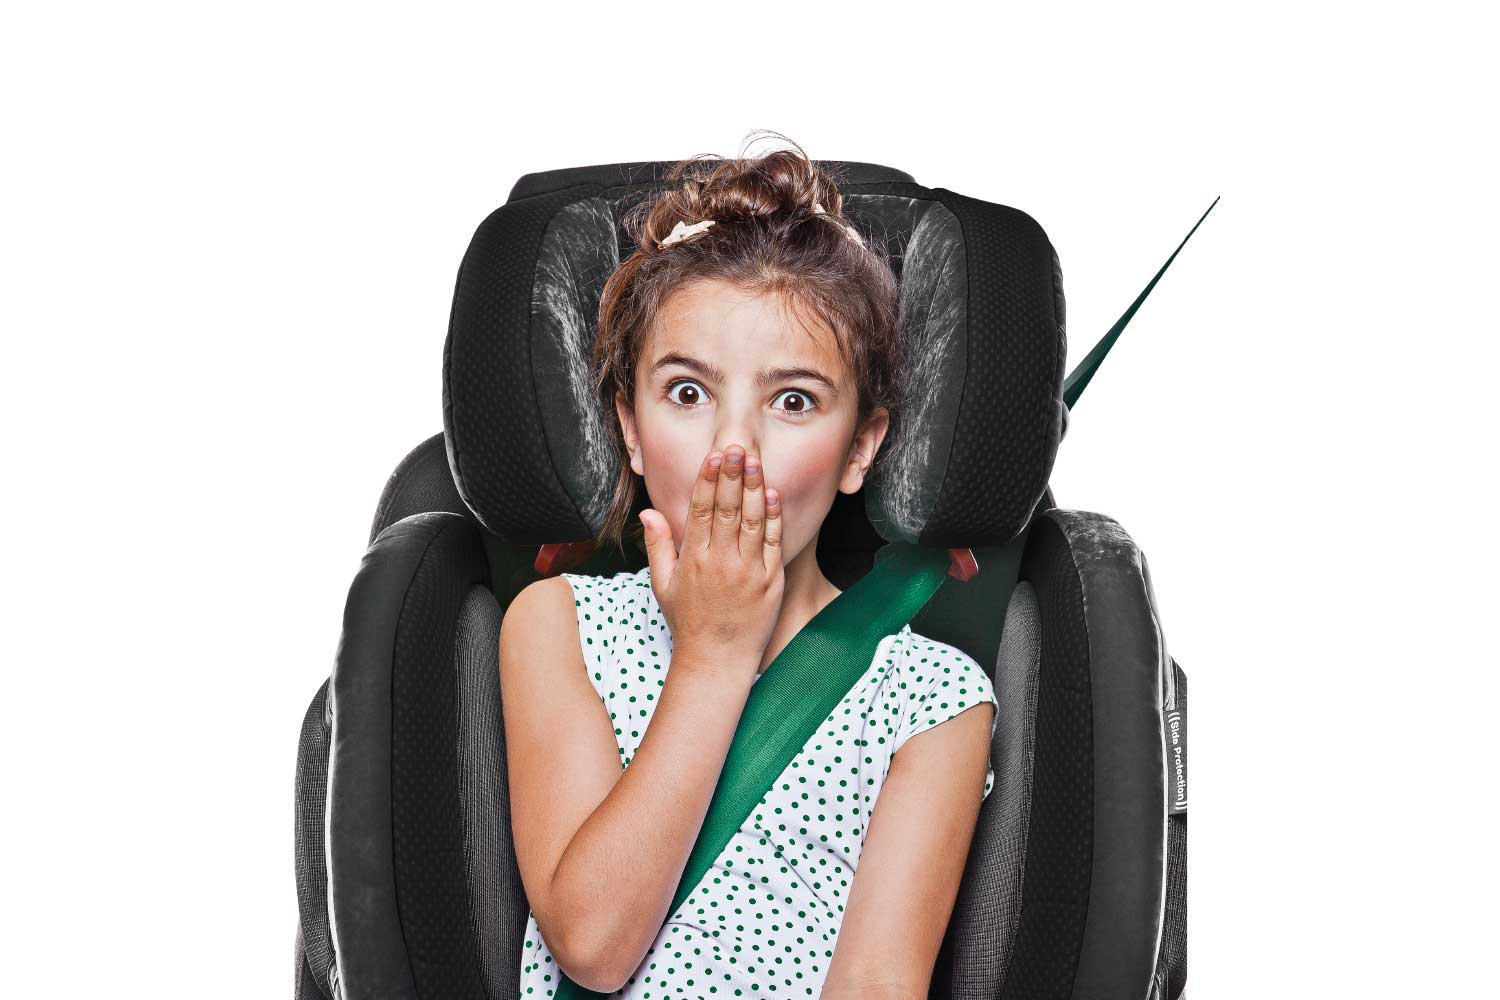 Child Restraints in a vehicle